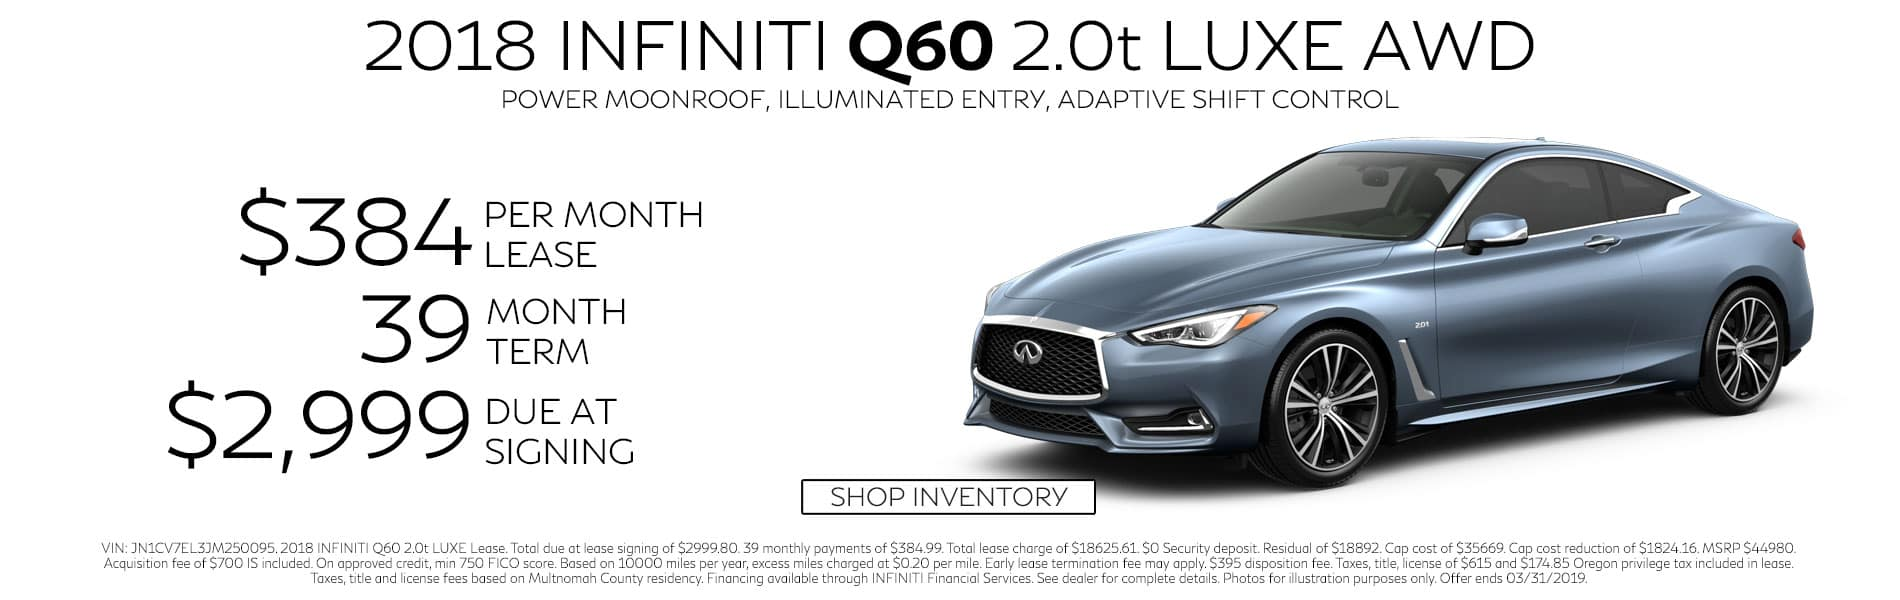 Lease a 2018 Q60 2.0t LUXE AWD for $384 per month with $2,999 due at signing